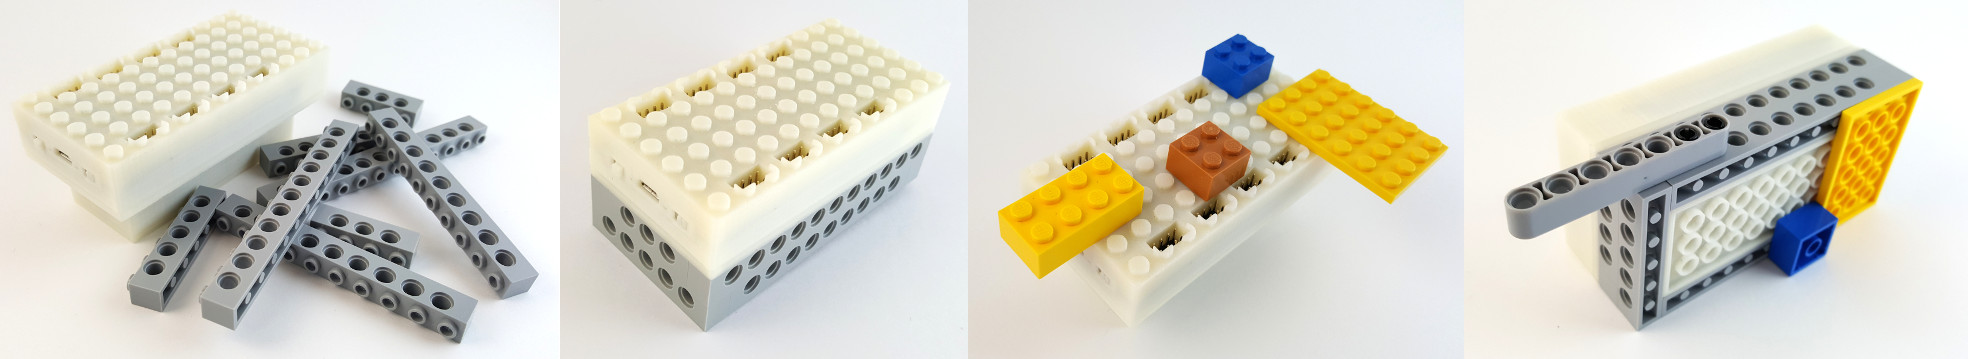 Build with LEGO bricks